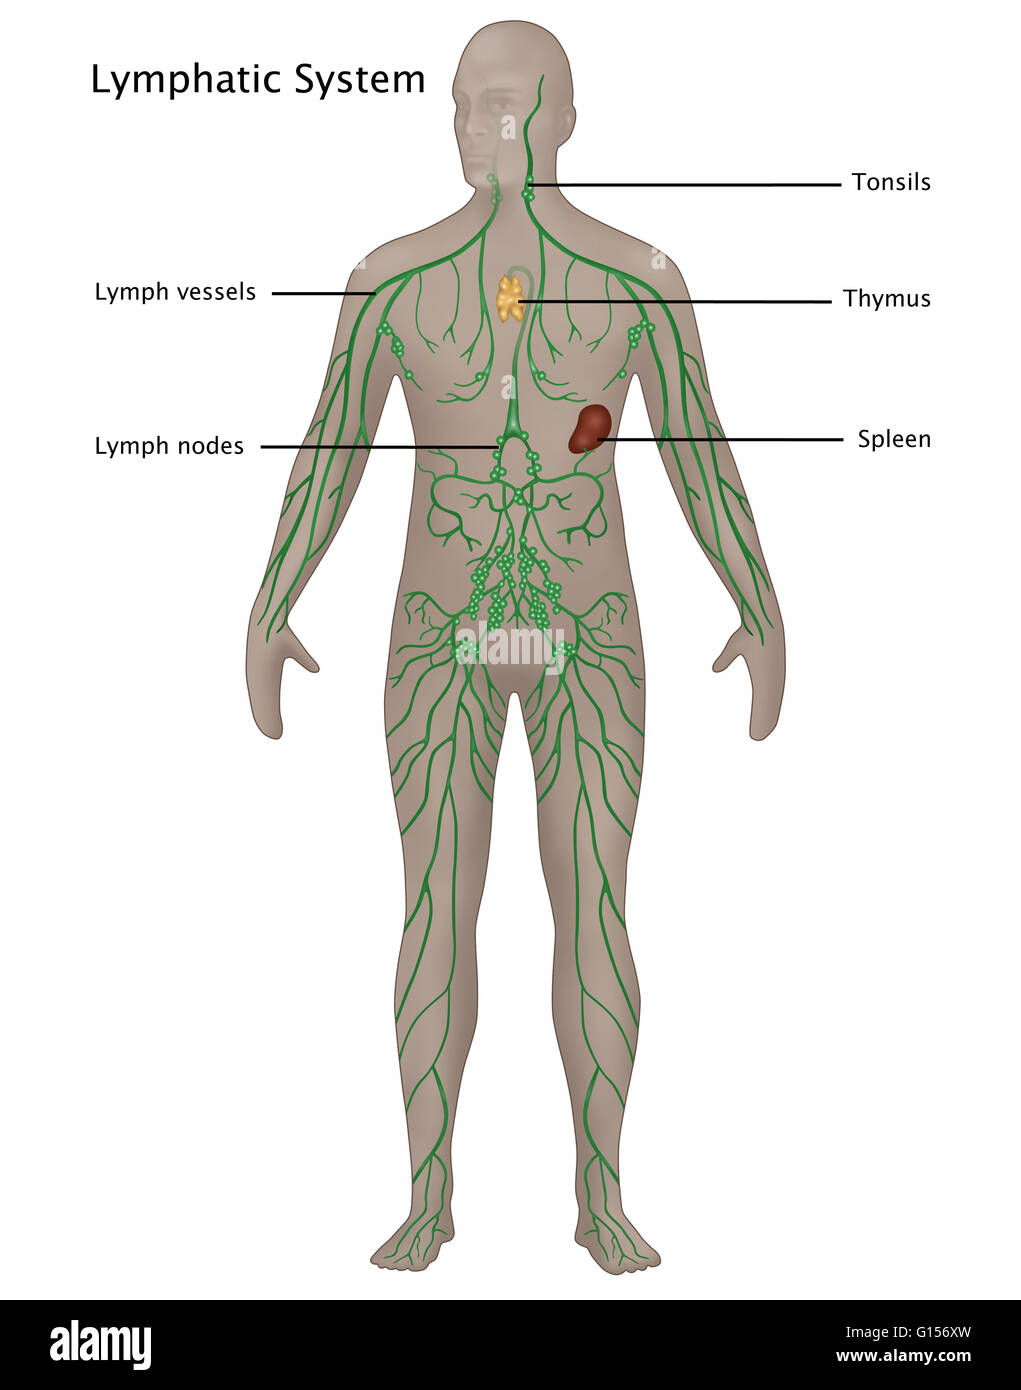 Human Lymphatic System Stock Photos Human Lymphatic System Stock